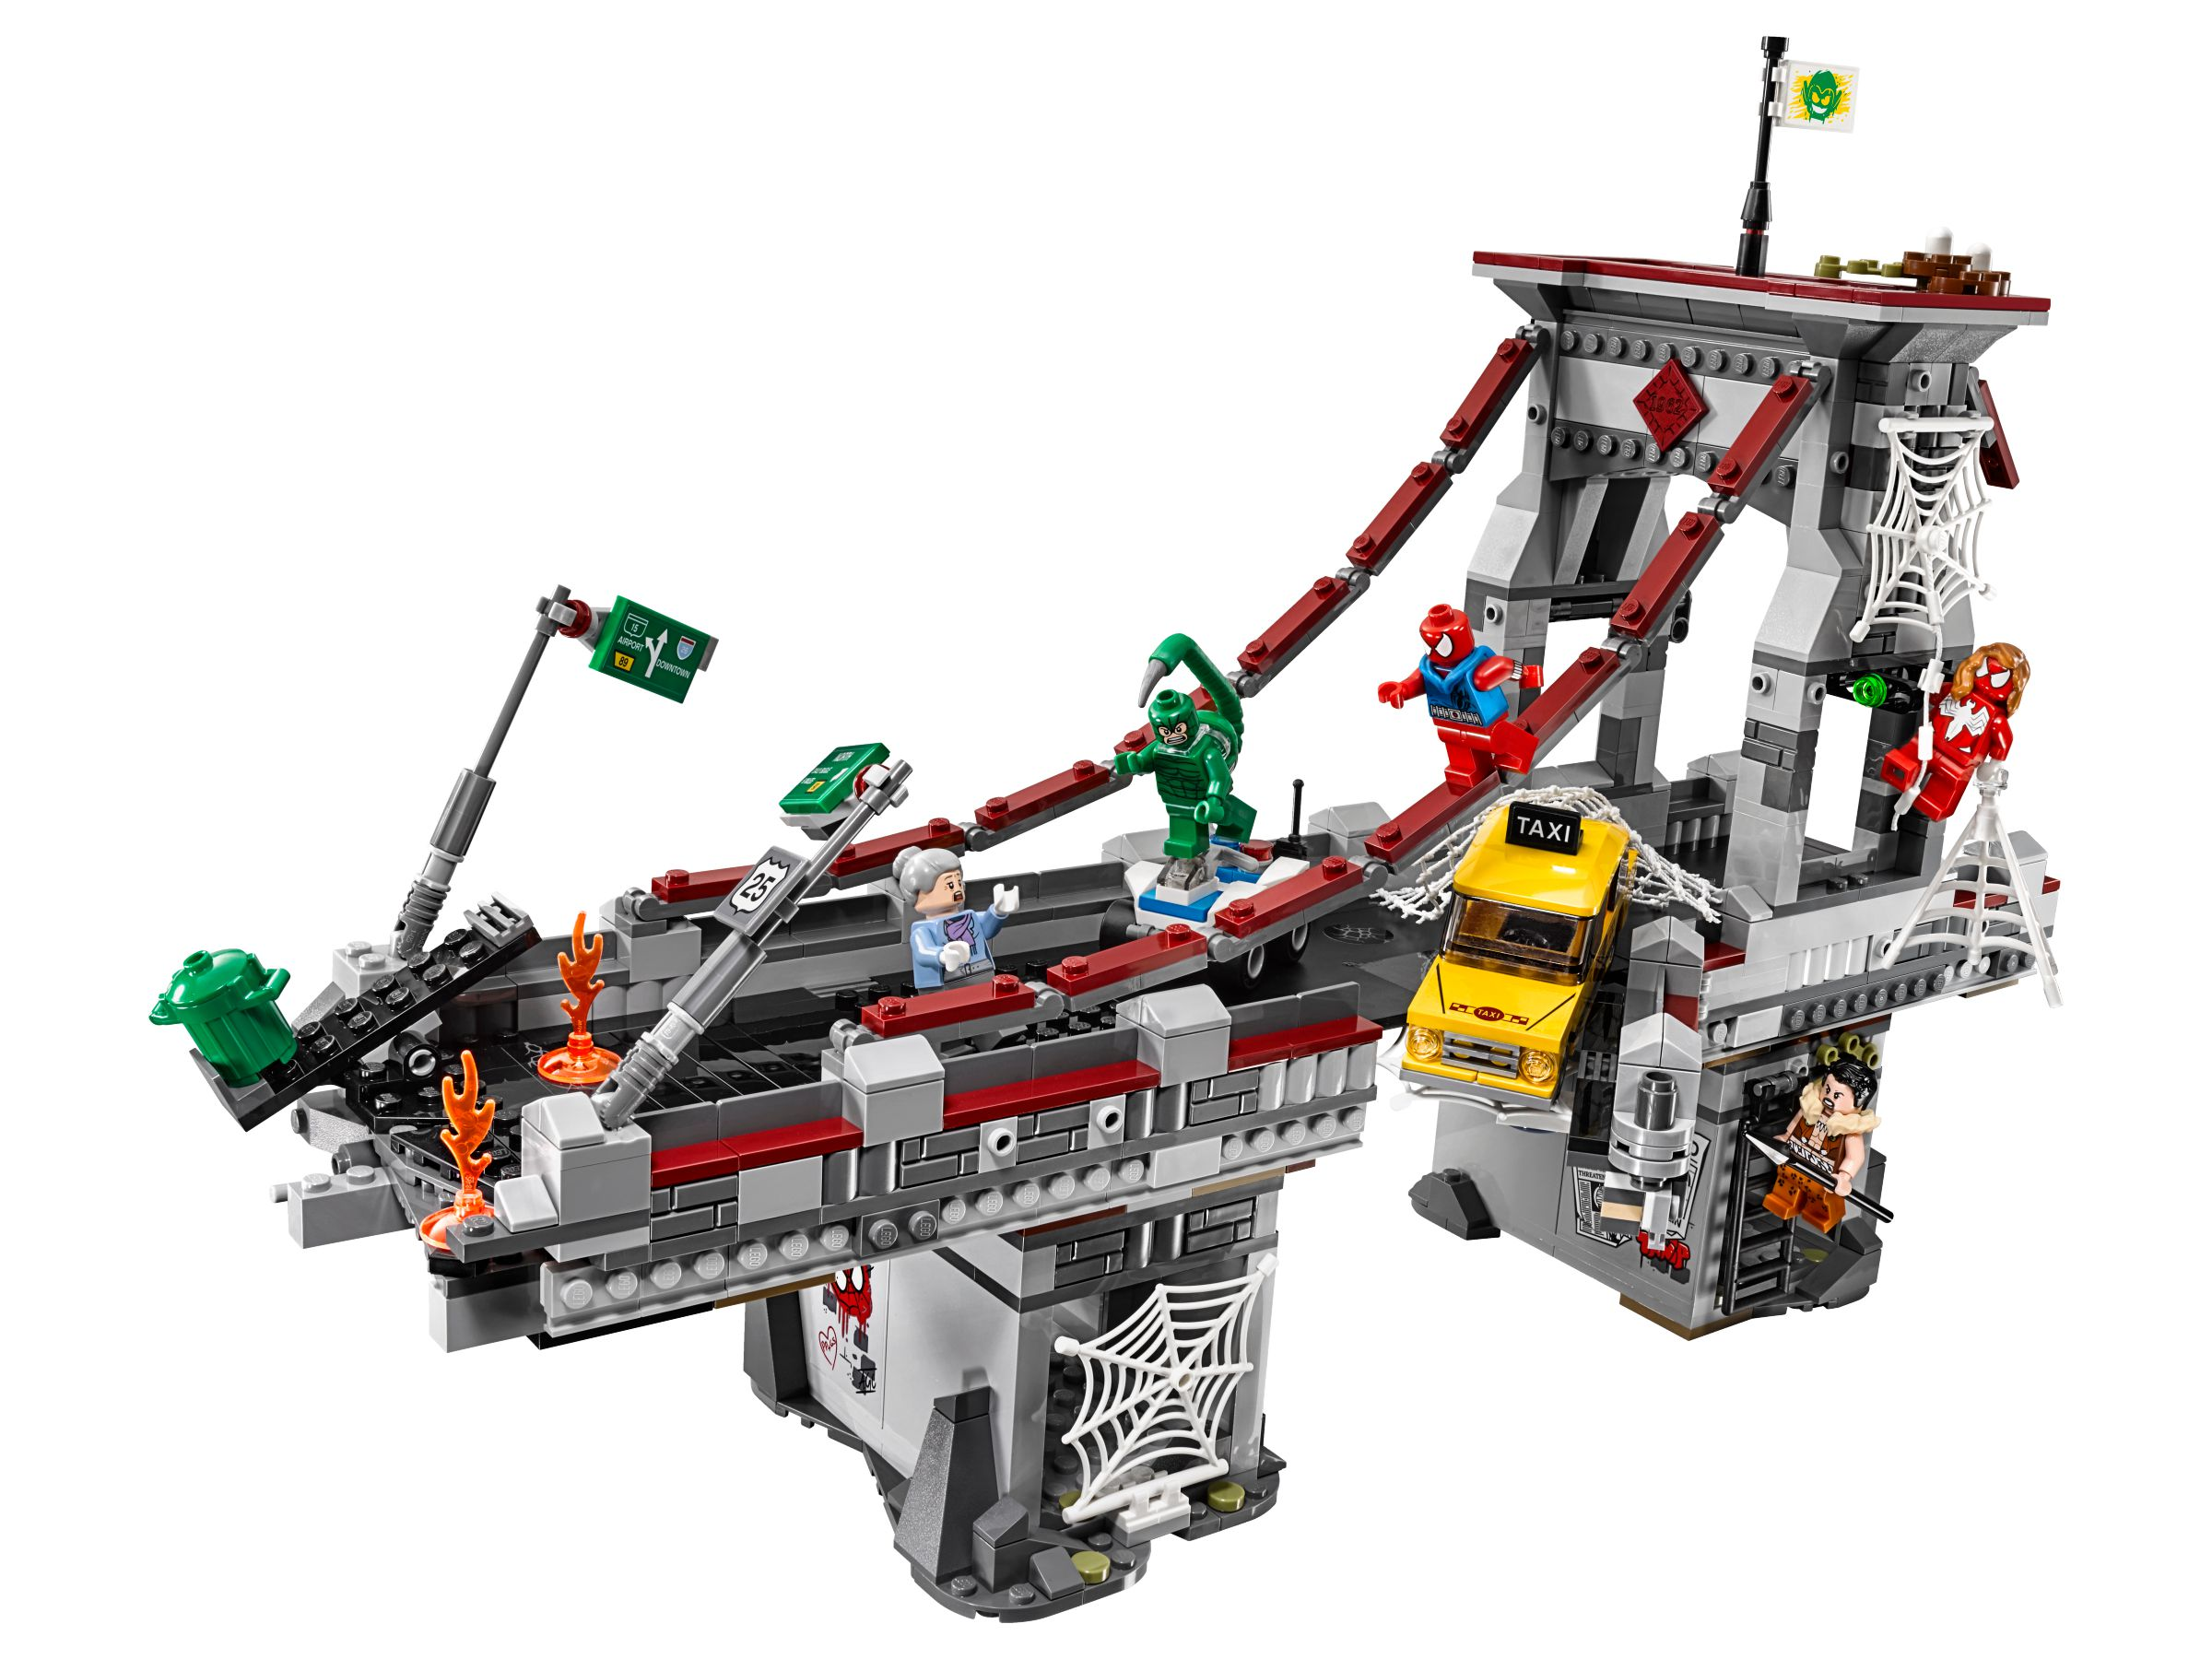 LEGO Super Heroes 76057 Spider-Man: Ultimatives Brückenduell der Web-Warriors LEGO_76057_alt3.jpg